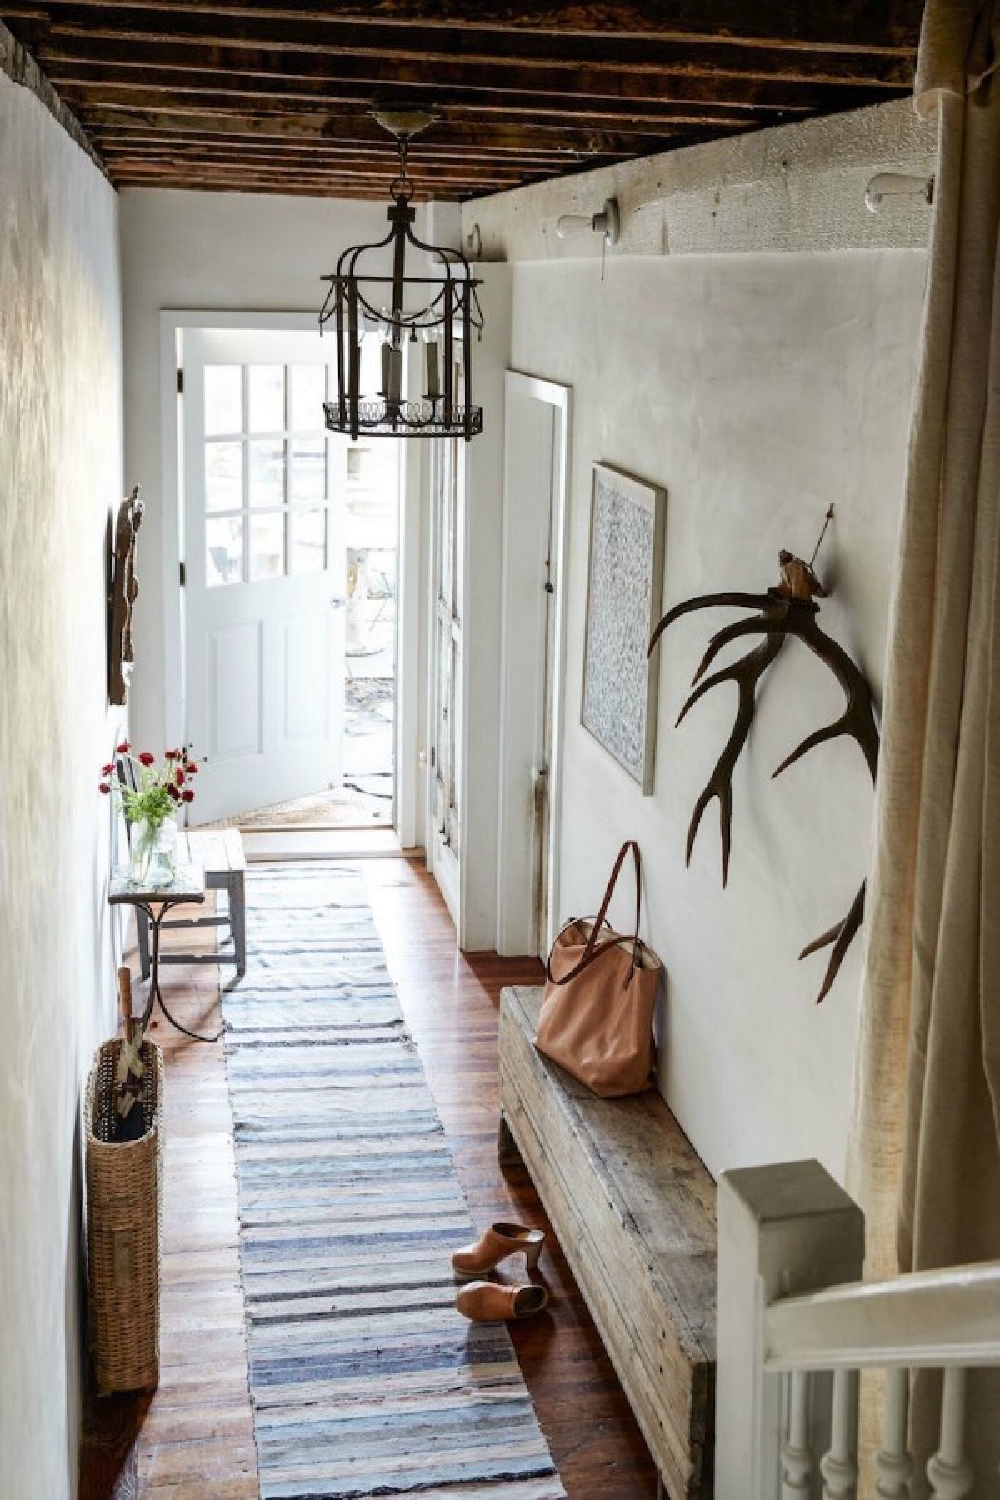 Gorgeous European farmhouse style in a New York apartment entry with rustic finishes and antiques by Jocelyn Sinnauer.